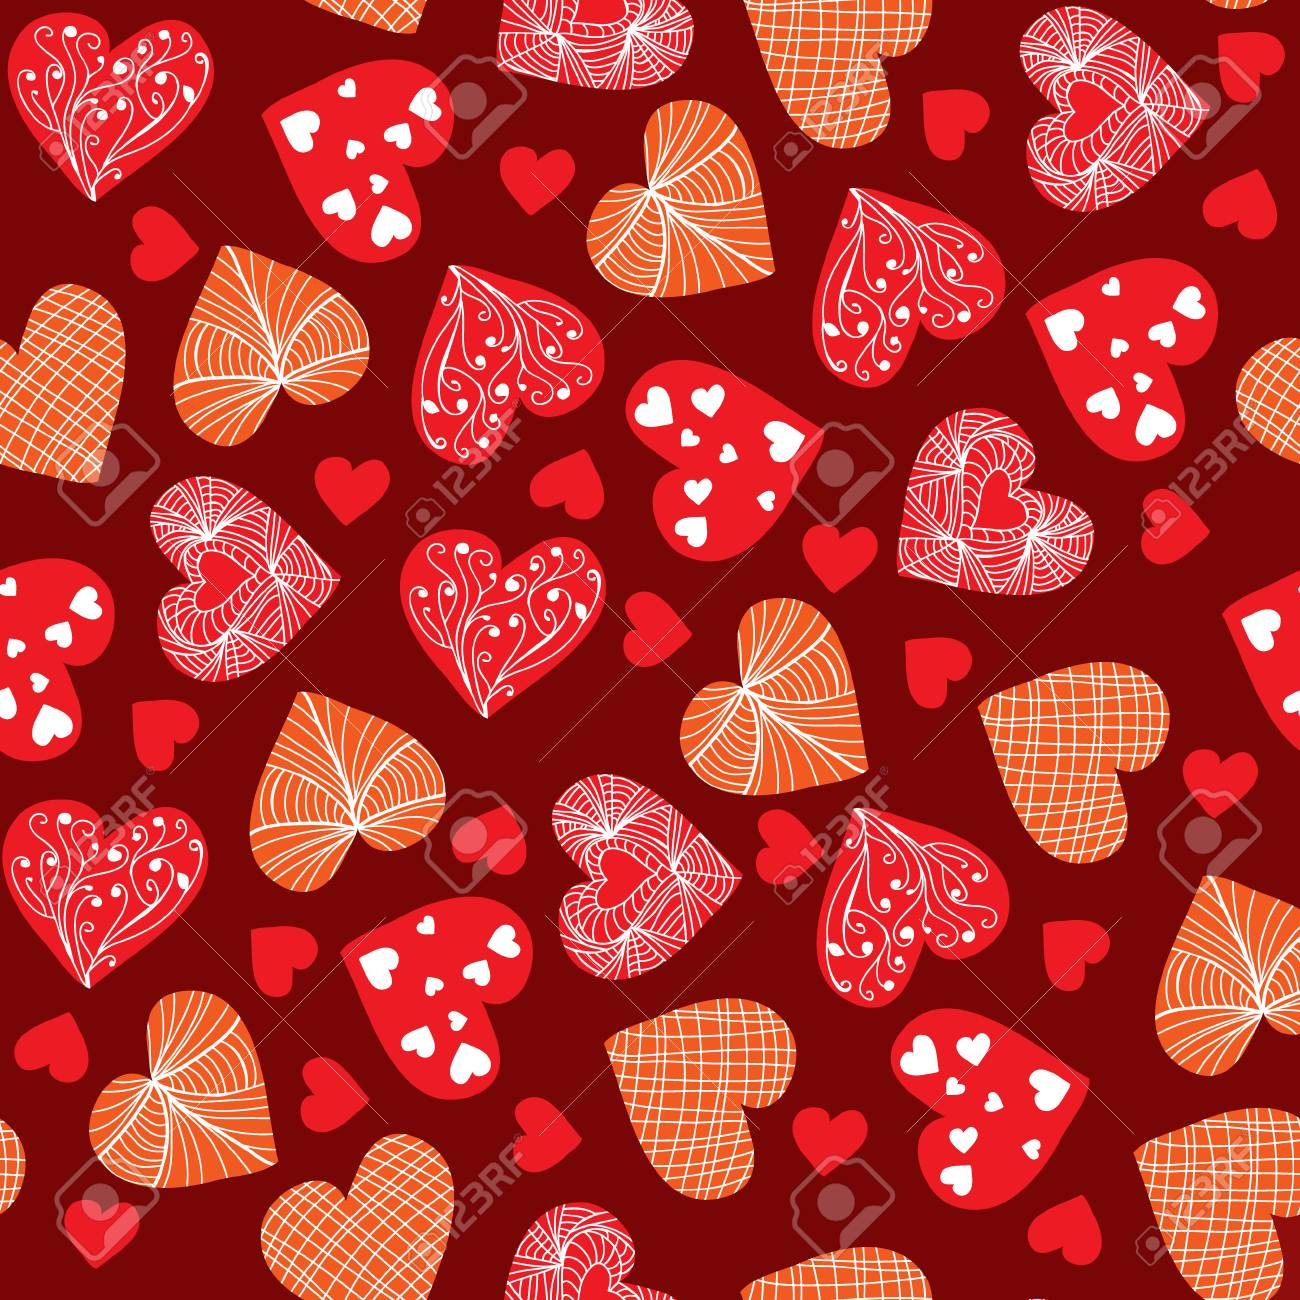 photo stock vector valentines day background design doodle hand drawn valentine hearts background for wallpaper wrappin